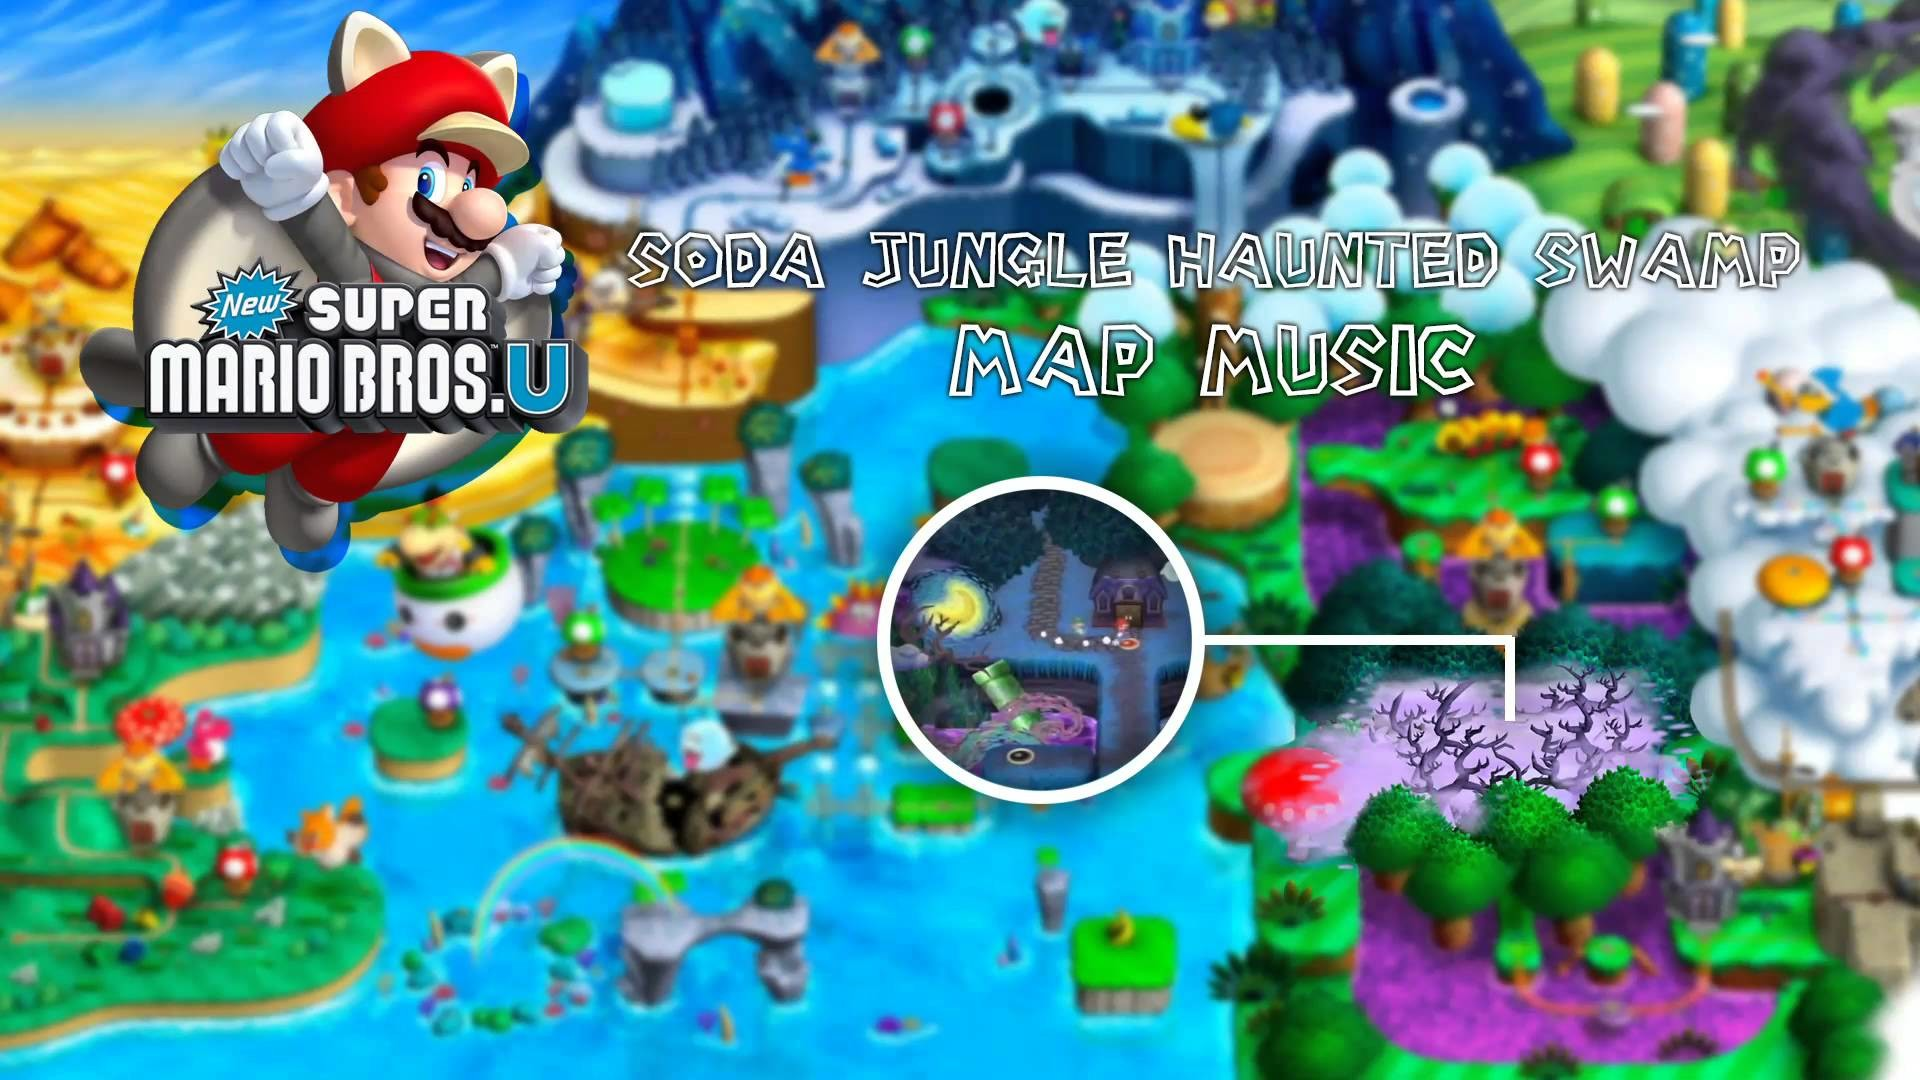 1920x1080 New Super Mario Bros. U - Soda Jungle Haunted Swamp Map Music - YouTube